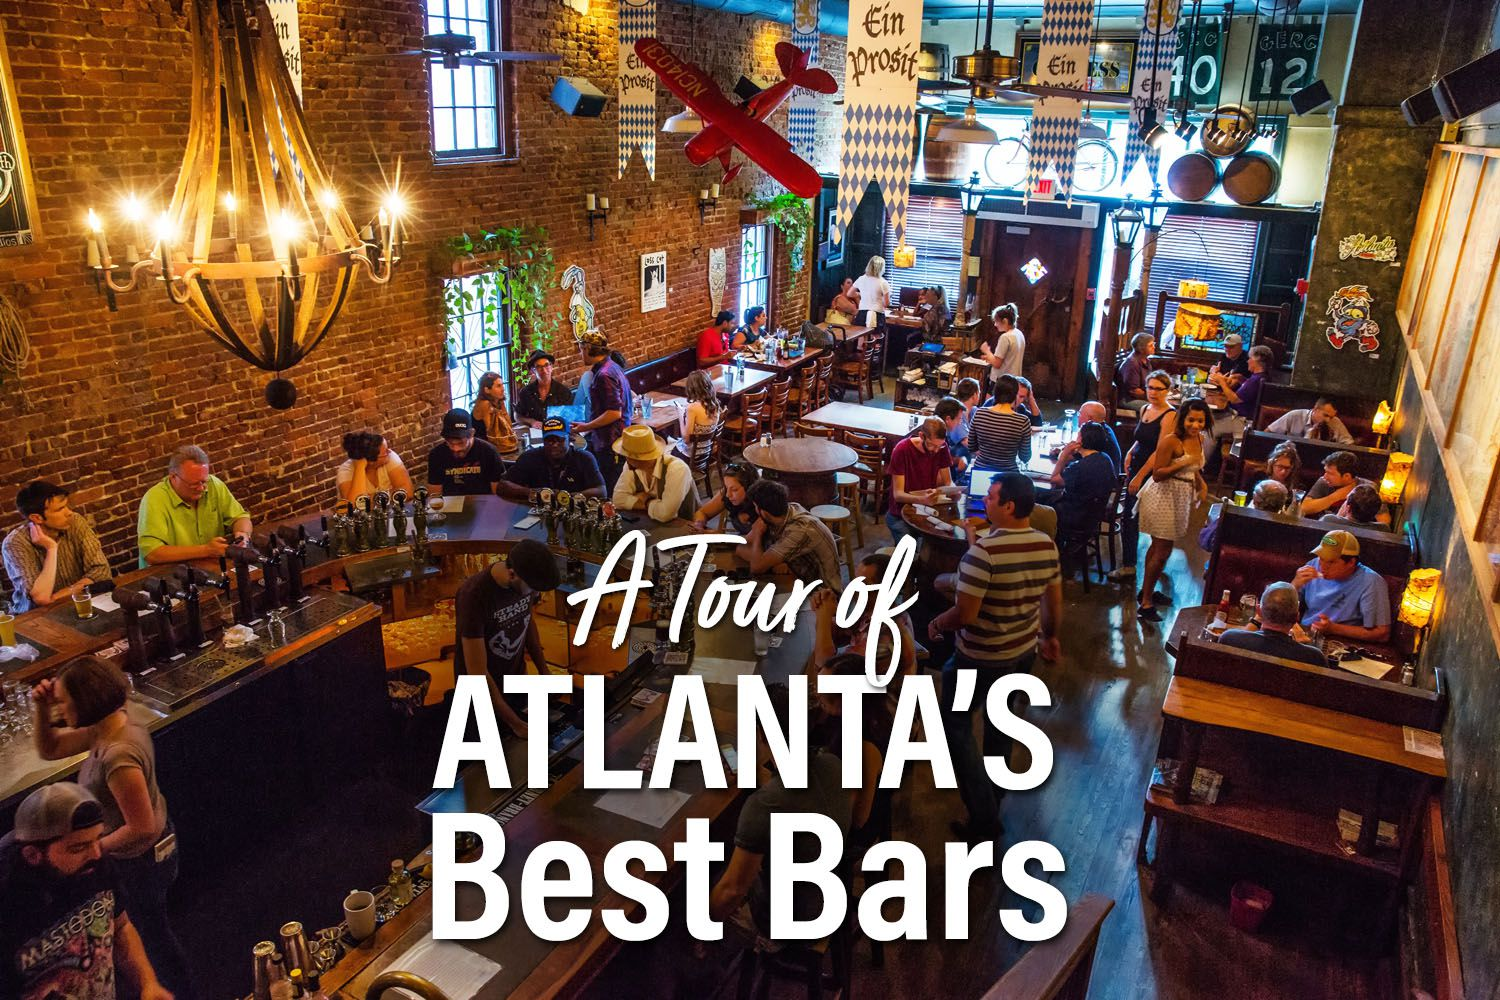 Atlanta's Best Bars